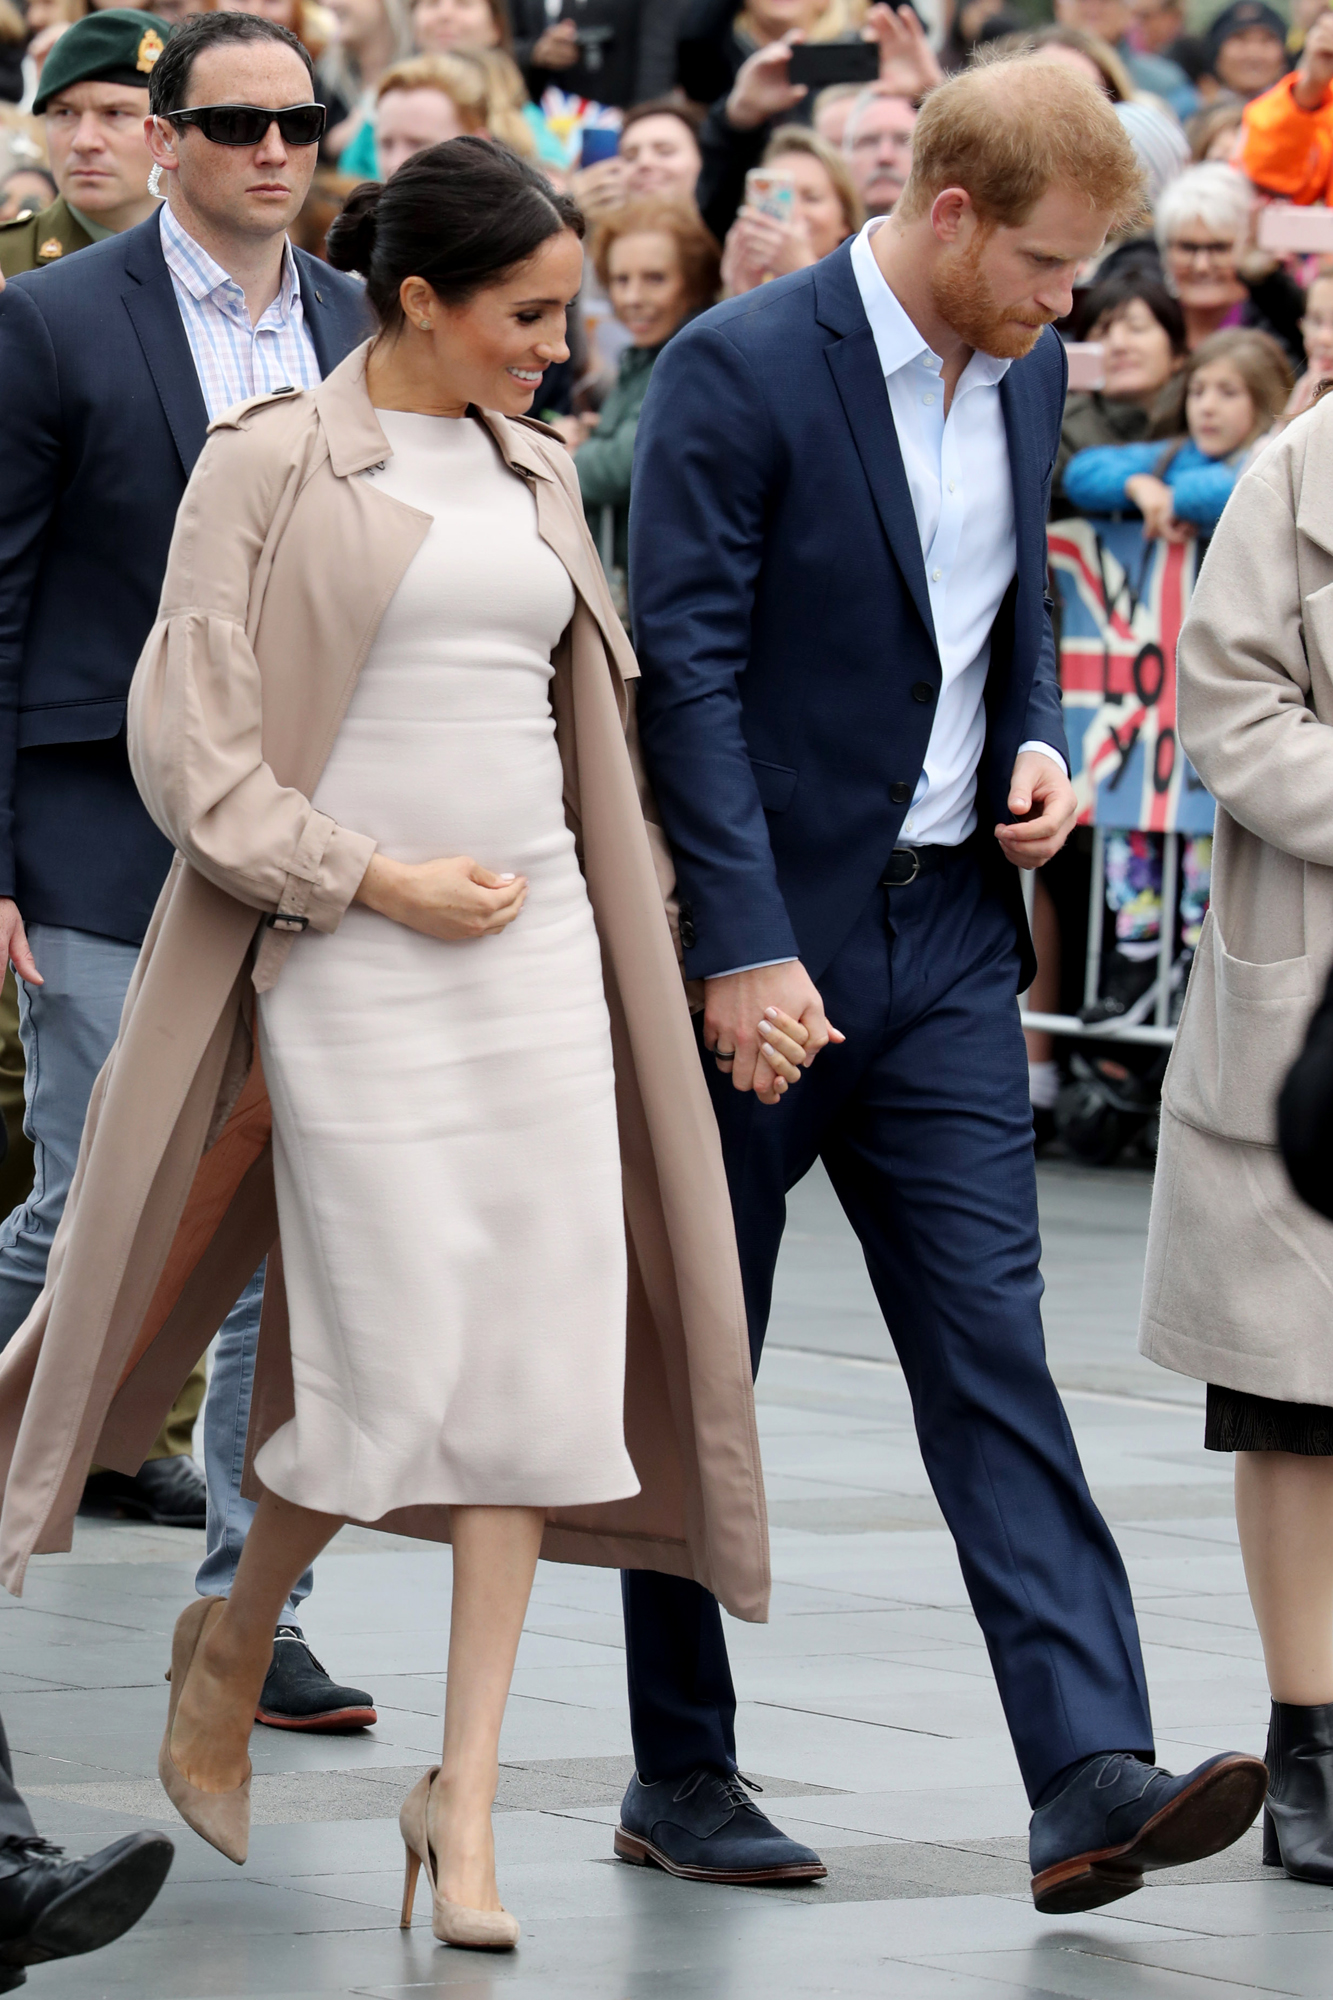 Prince Harry and Meghan Duchess of Sussex tour of New Zealand - 30 Oct 2018